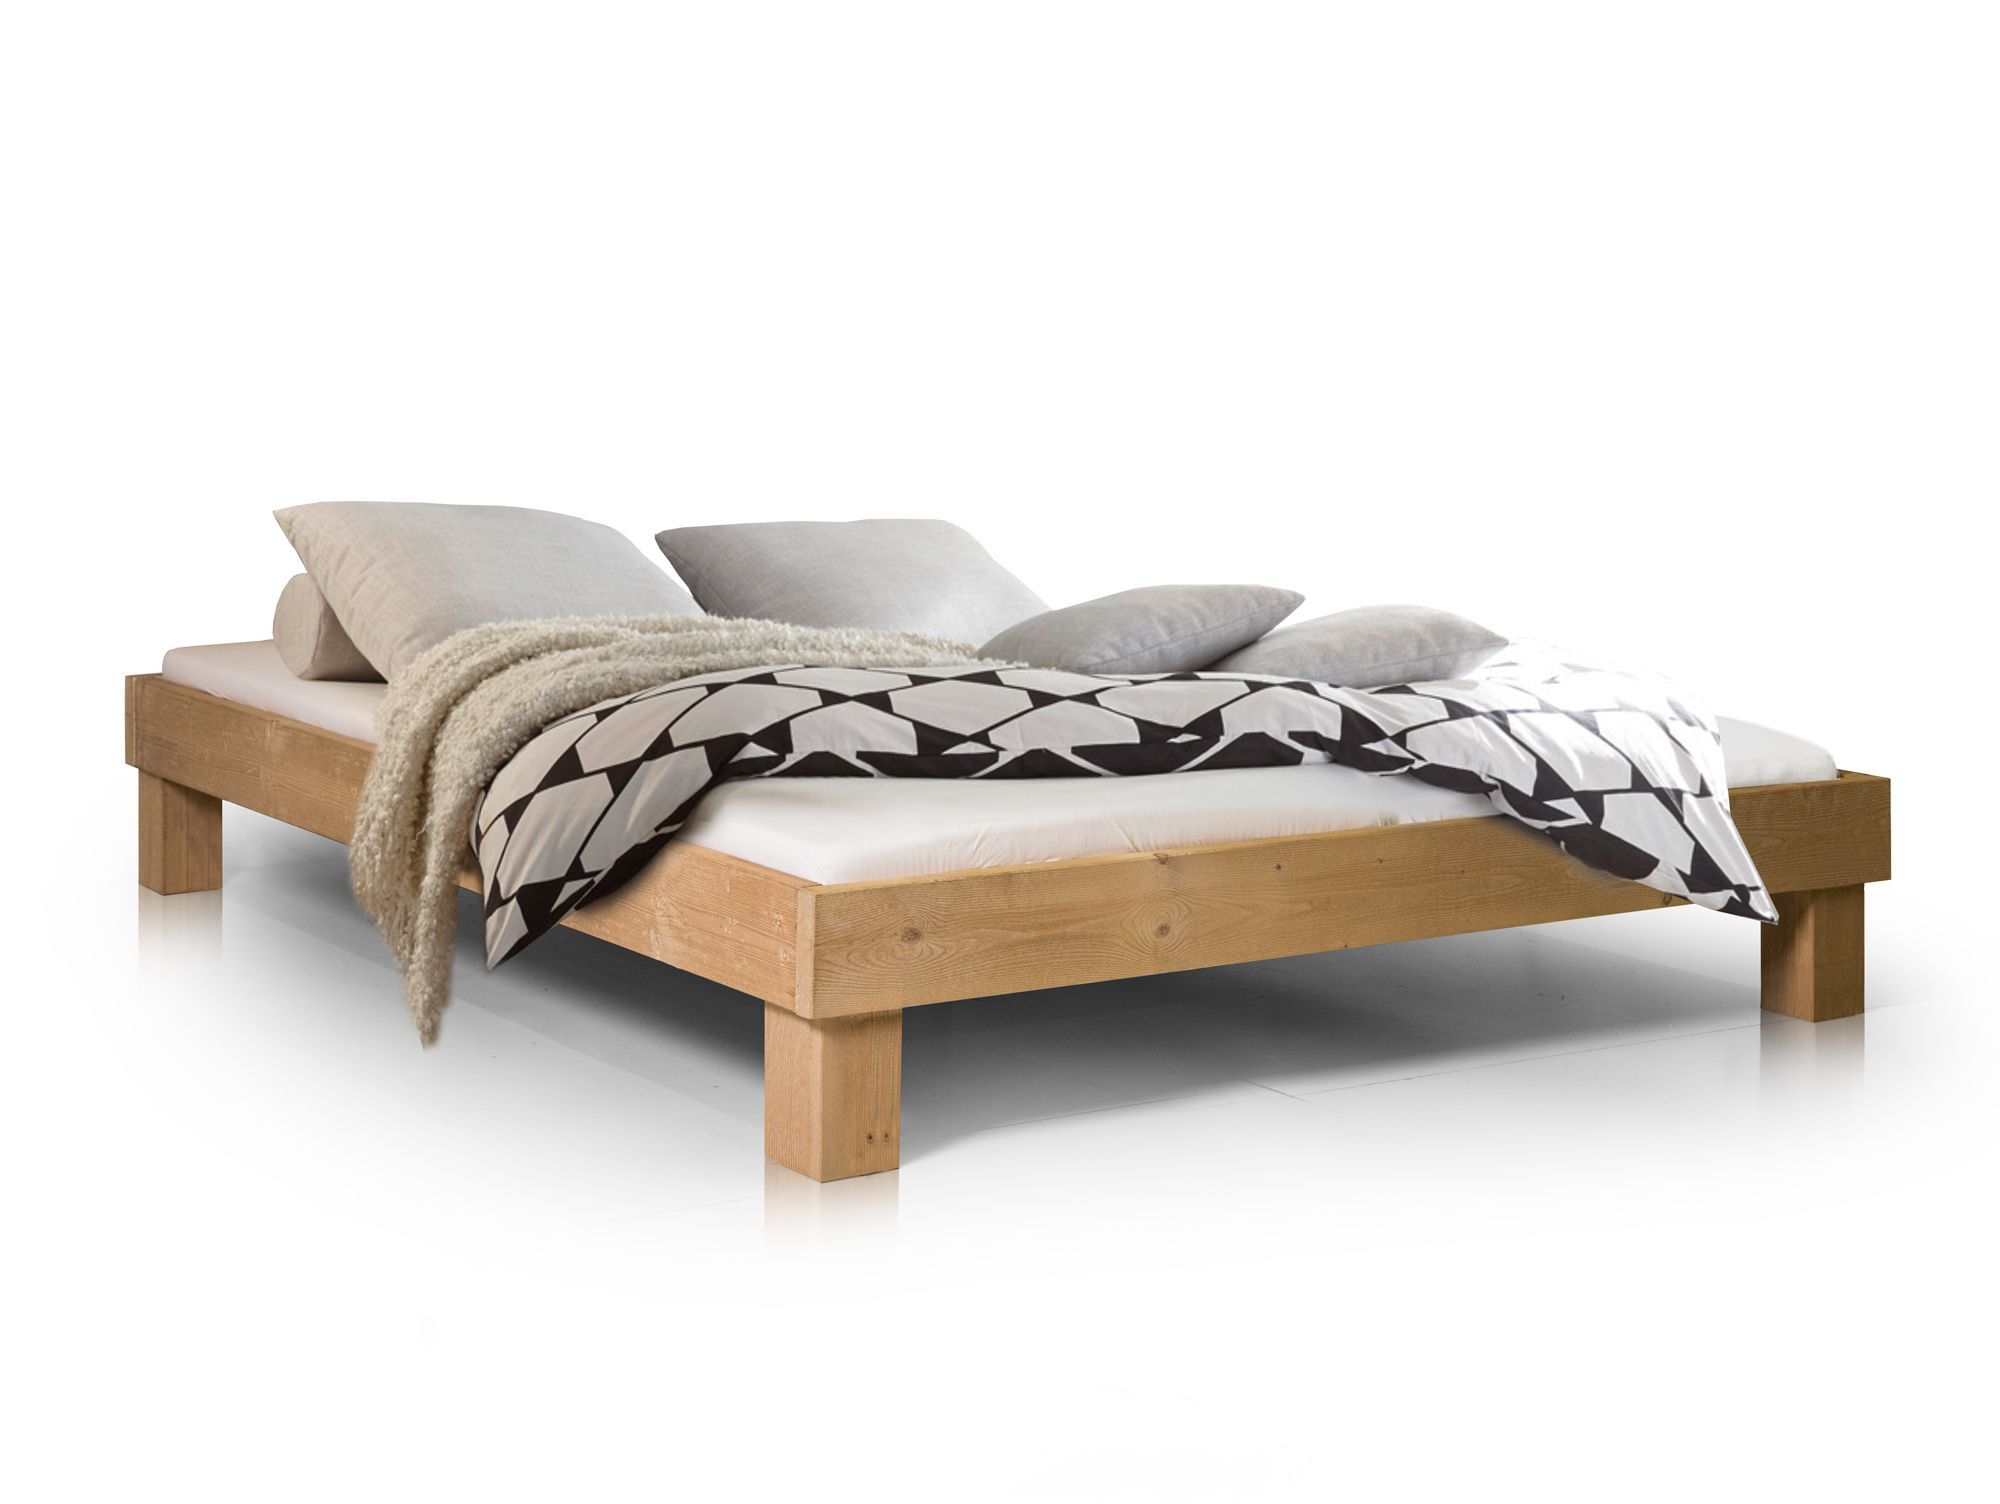 50 Unique Bett Massivholz 160x200 Images In 2020 Bed Toddler Bed Chaise Lounge